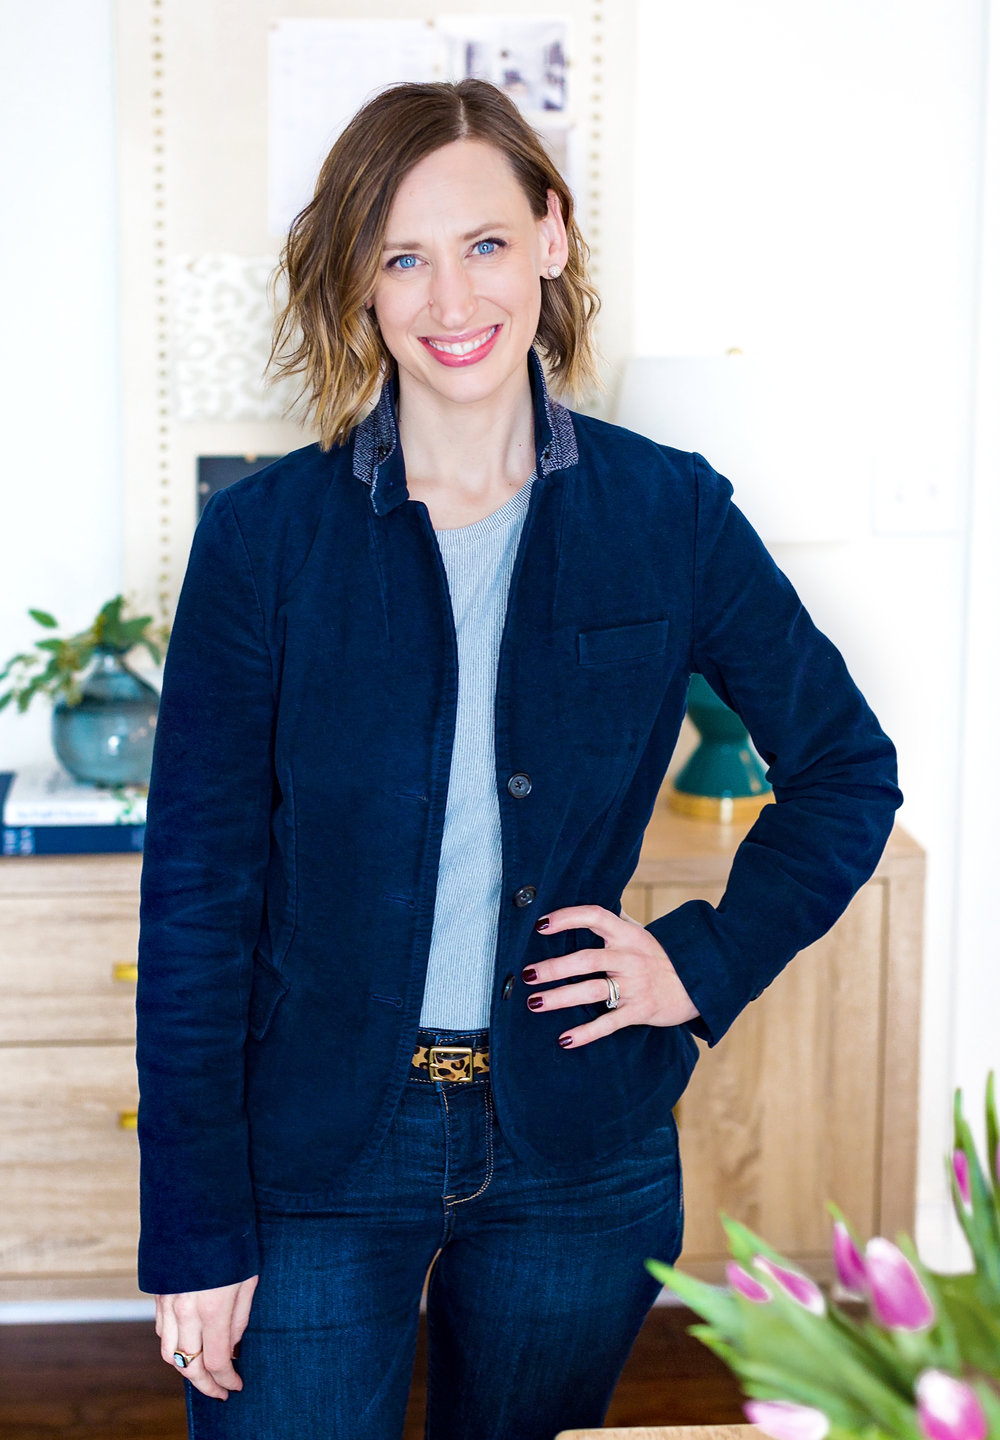 LAURA IRION - Laura Irion is co-owner, Principal Designer, and one half of the Lauras at Laura Design Company. Her years of experience in the commercial interiors and retail home furnishings industries led her to found the design blog, Avery Street, where her personal blog and remodeling projects have been featured by House Beautiful and Popular Mechanics Magazines, POPSUGAR Home, My Domaine, Apartment Therapy, and Mashable, among others. Her Instagram styling and photography has also been featured by several prominent brands and publications including Real Simple Magazine, Pottery Barn, IKEA, Design*Sponge, and The Every Girl. Laura holds a B.S. in Fashion Merchandising.Connect with Laura:  INSTAGRAM | PINTEREST